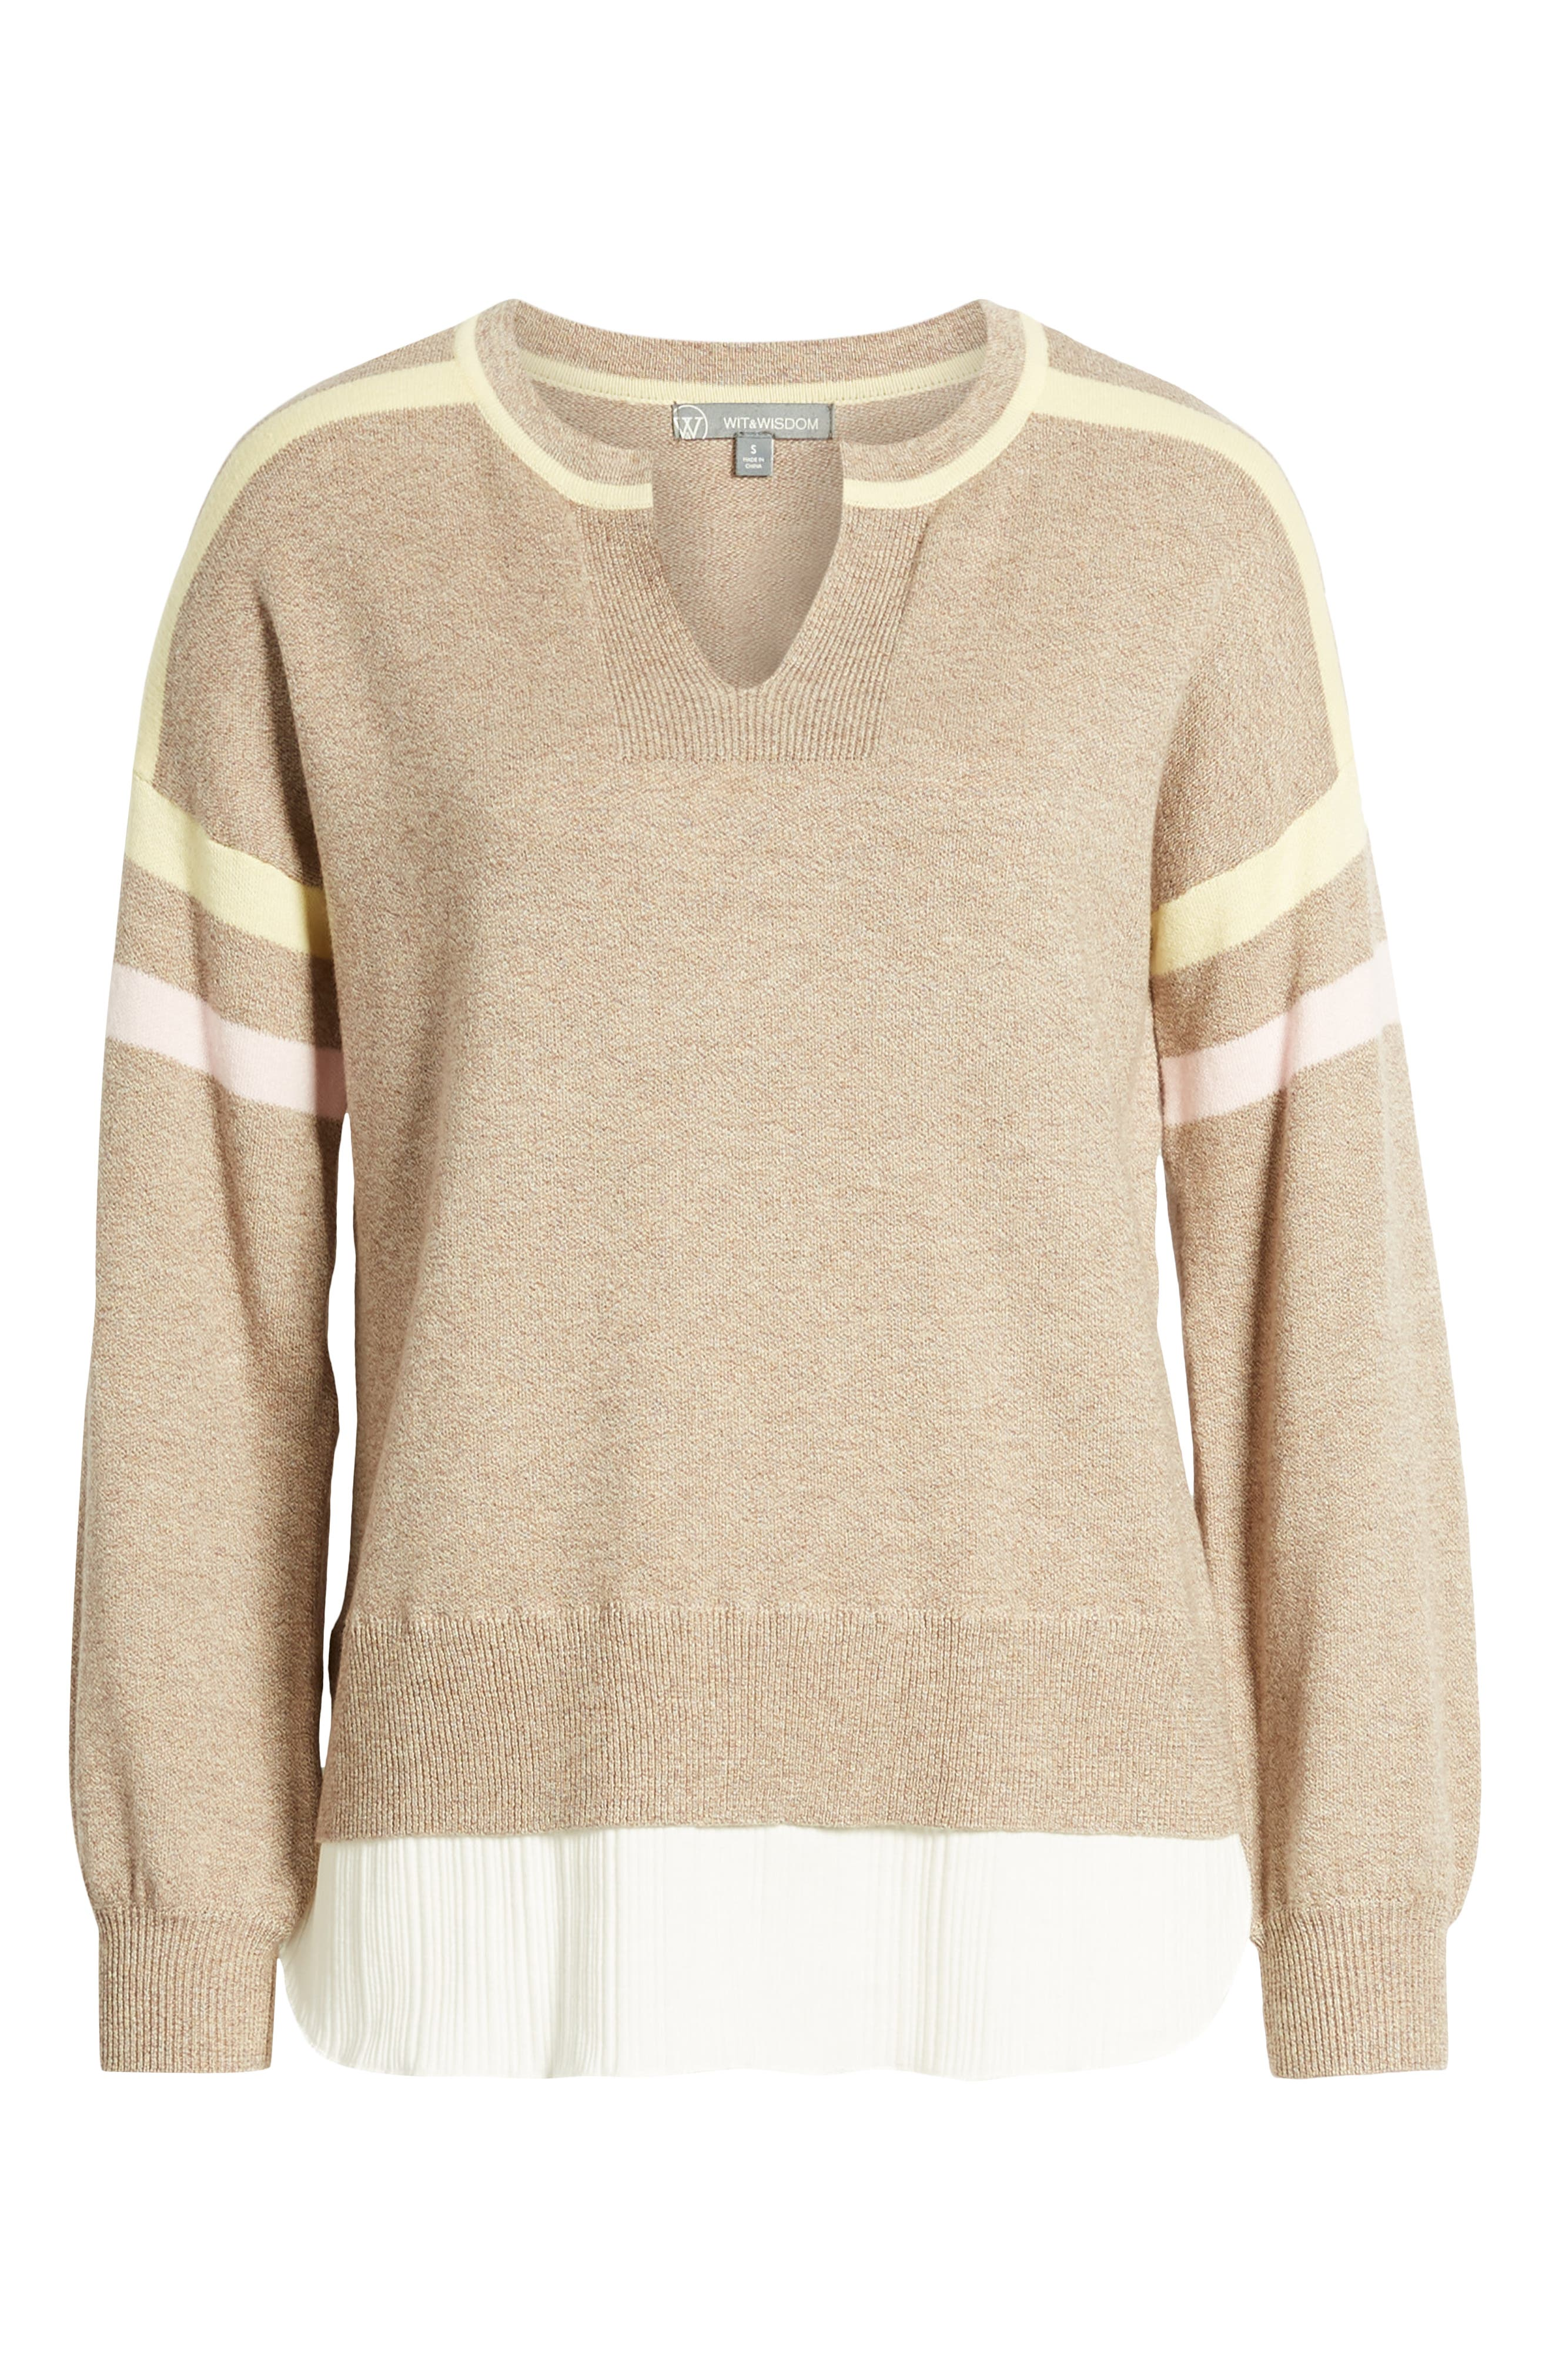 Layered Look Stripe Sweater,                             Alternate thumbnail 6, color,                             HEATHER CLOVE